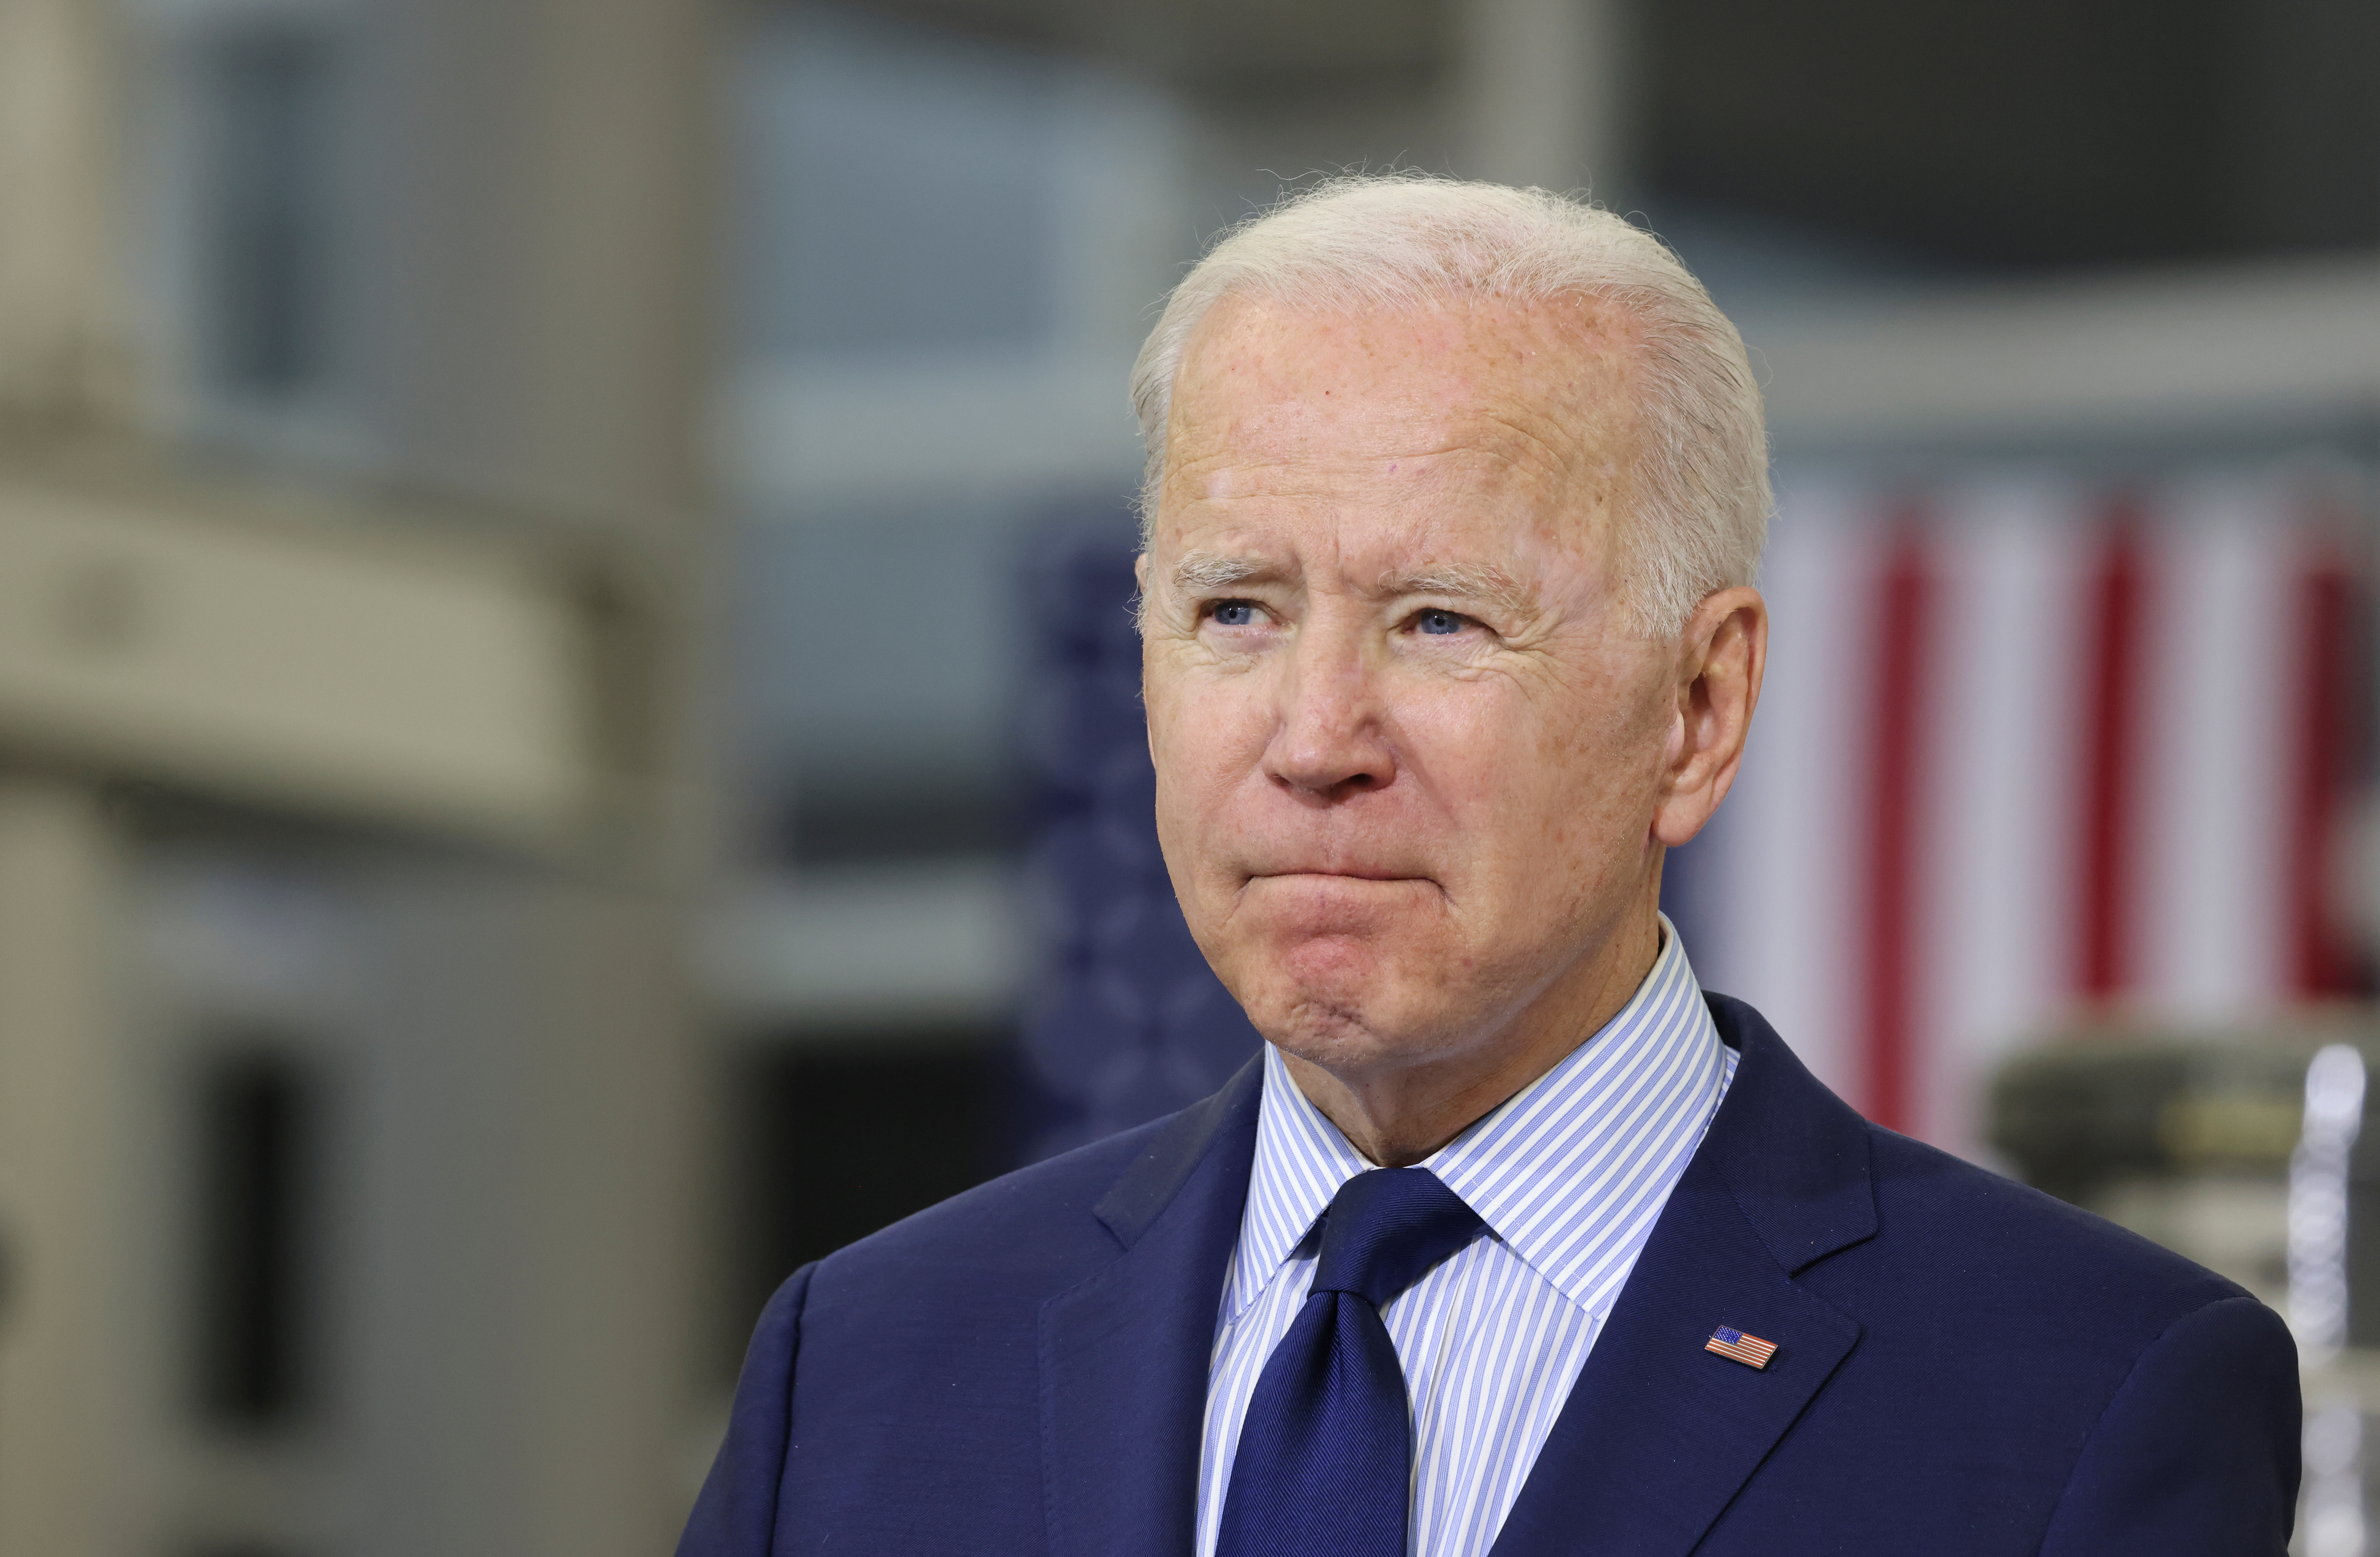 U.S. President Joe Biden delivers remarks on the economy during a visit to Cuyahoga Community College in Cleveland, Ohio, U.S., May 27, 2021. REUTERS/Evelyn Hockstein